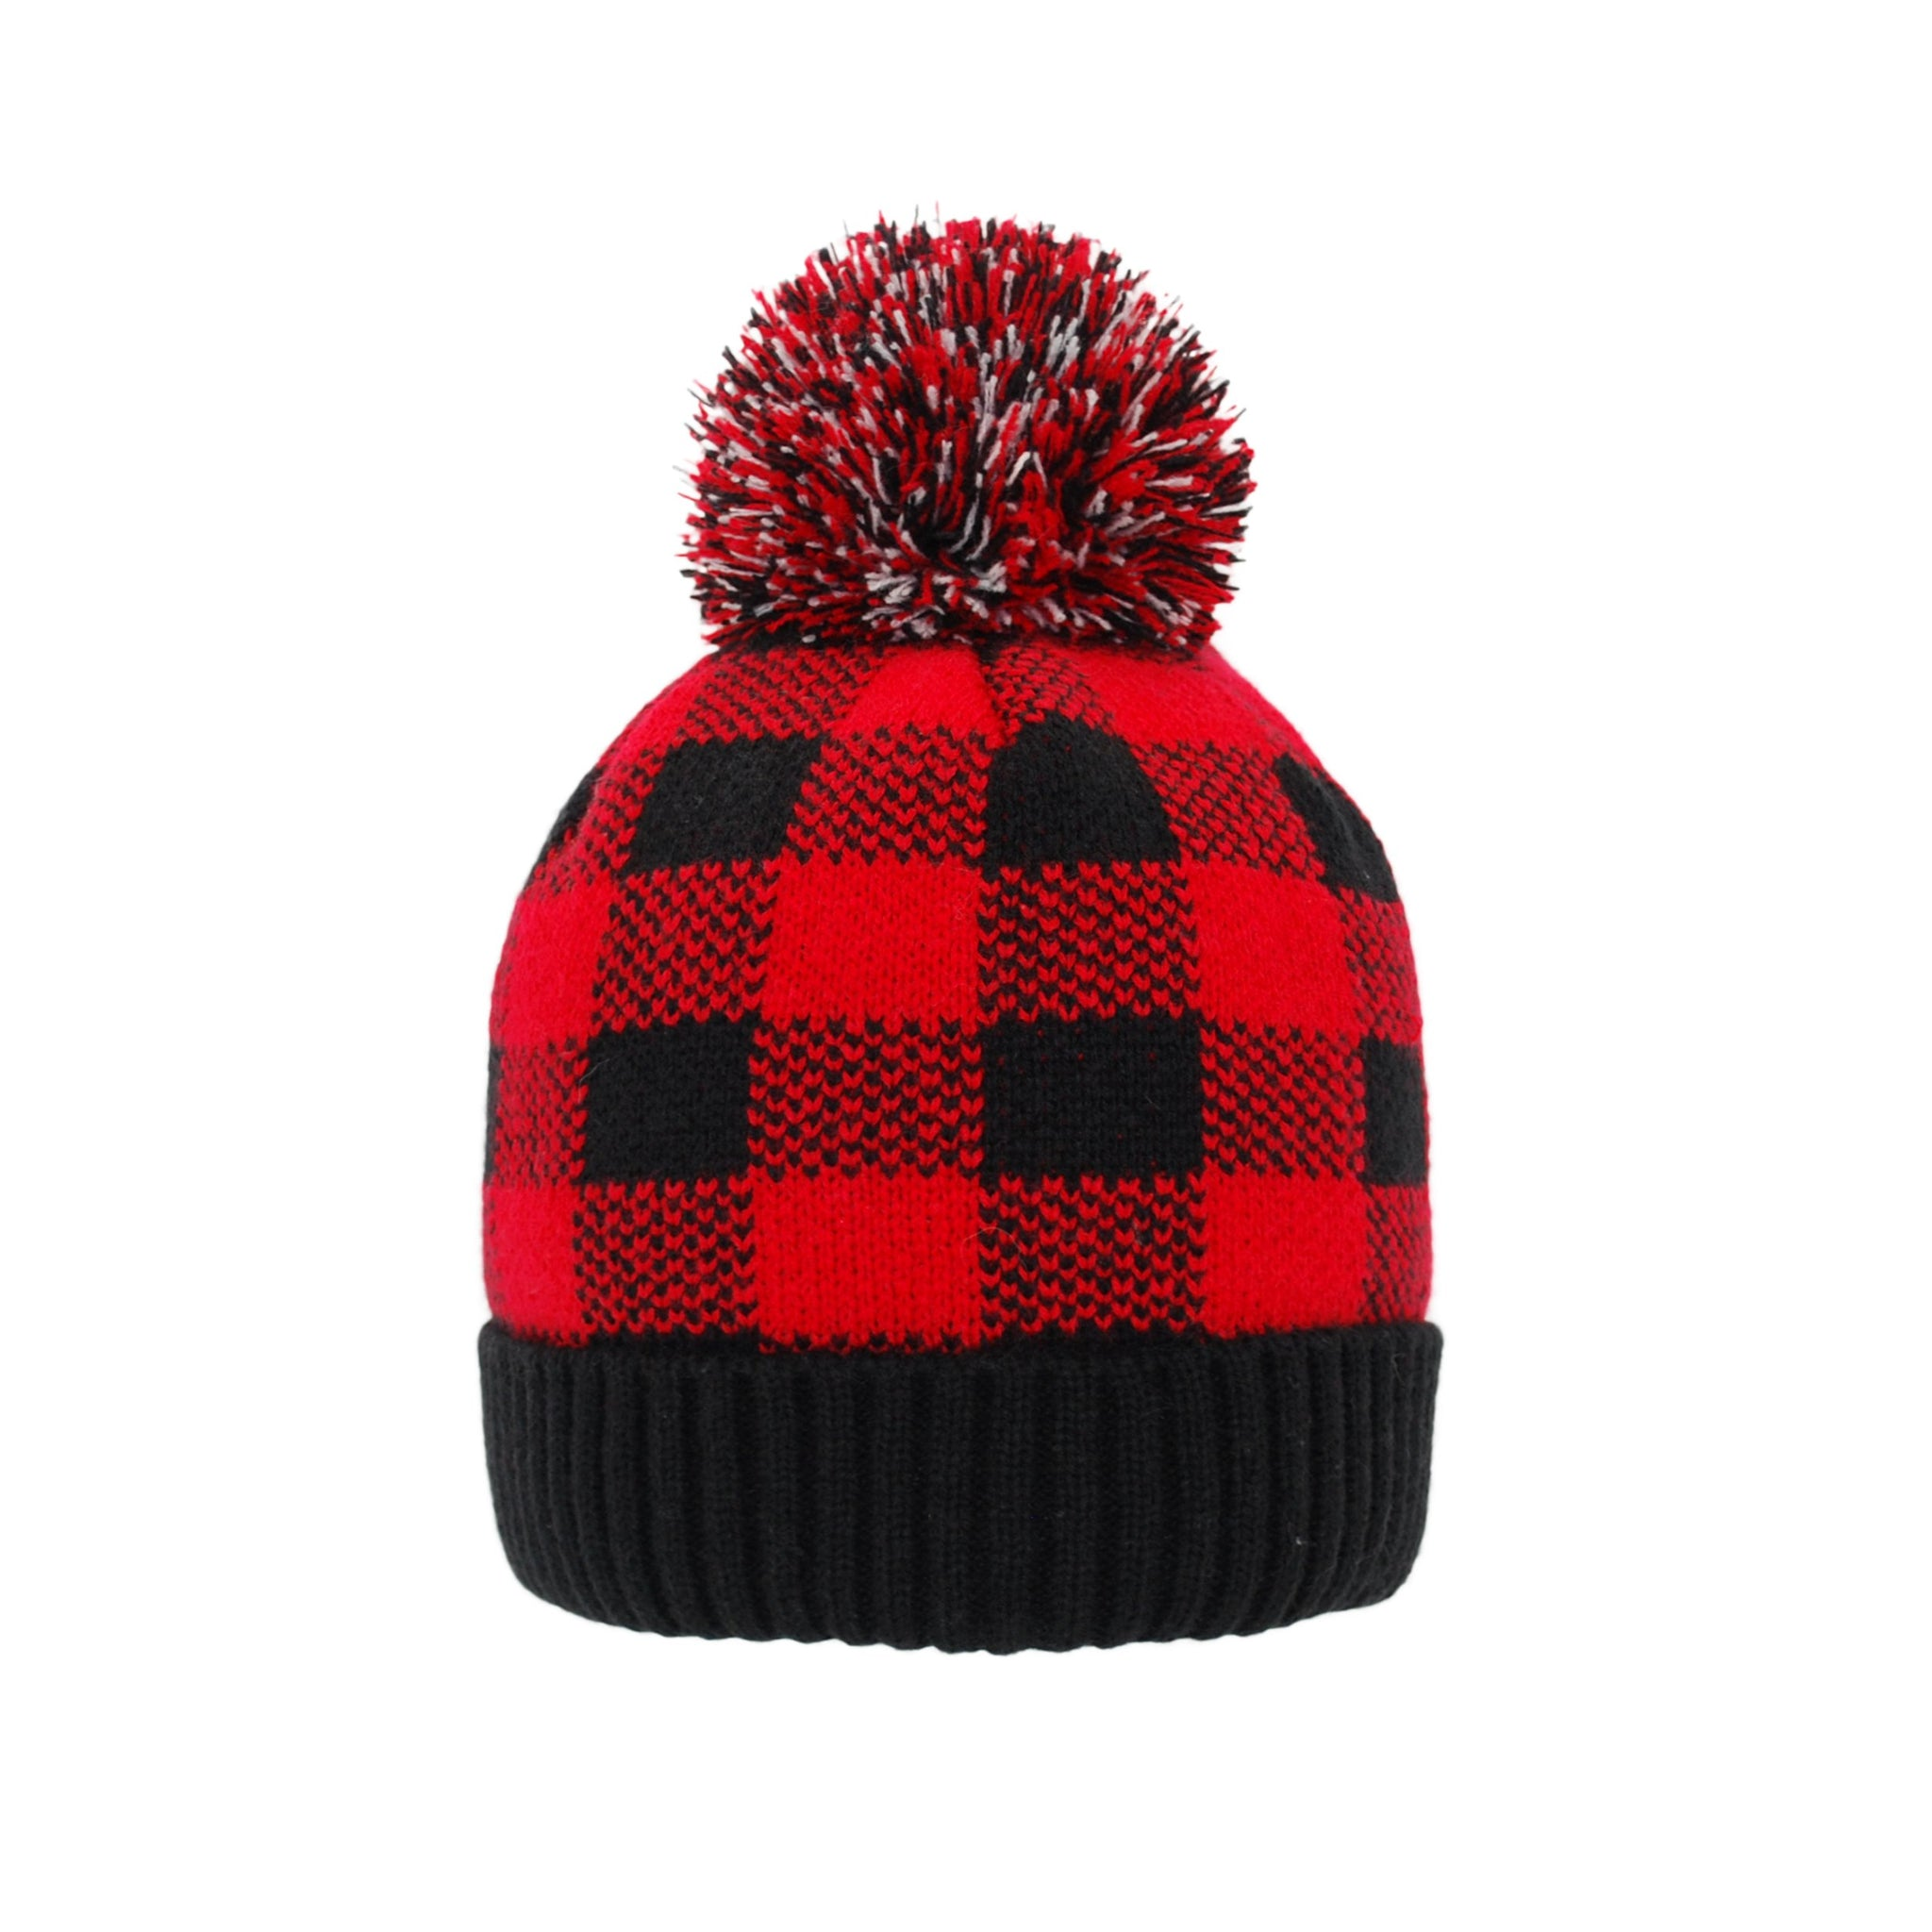 Kids Toque Winter Hat | Lumberjack Red